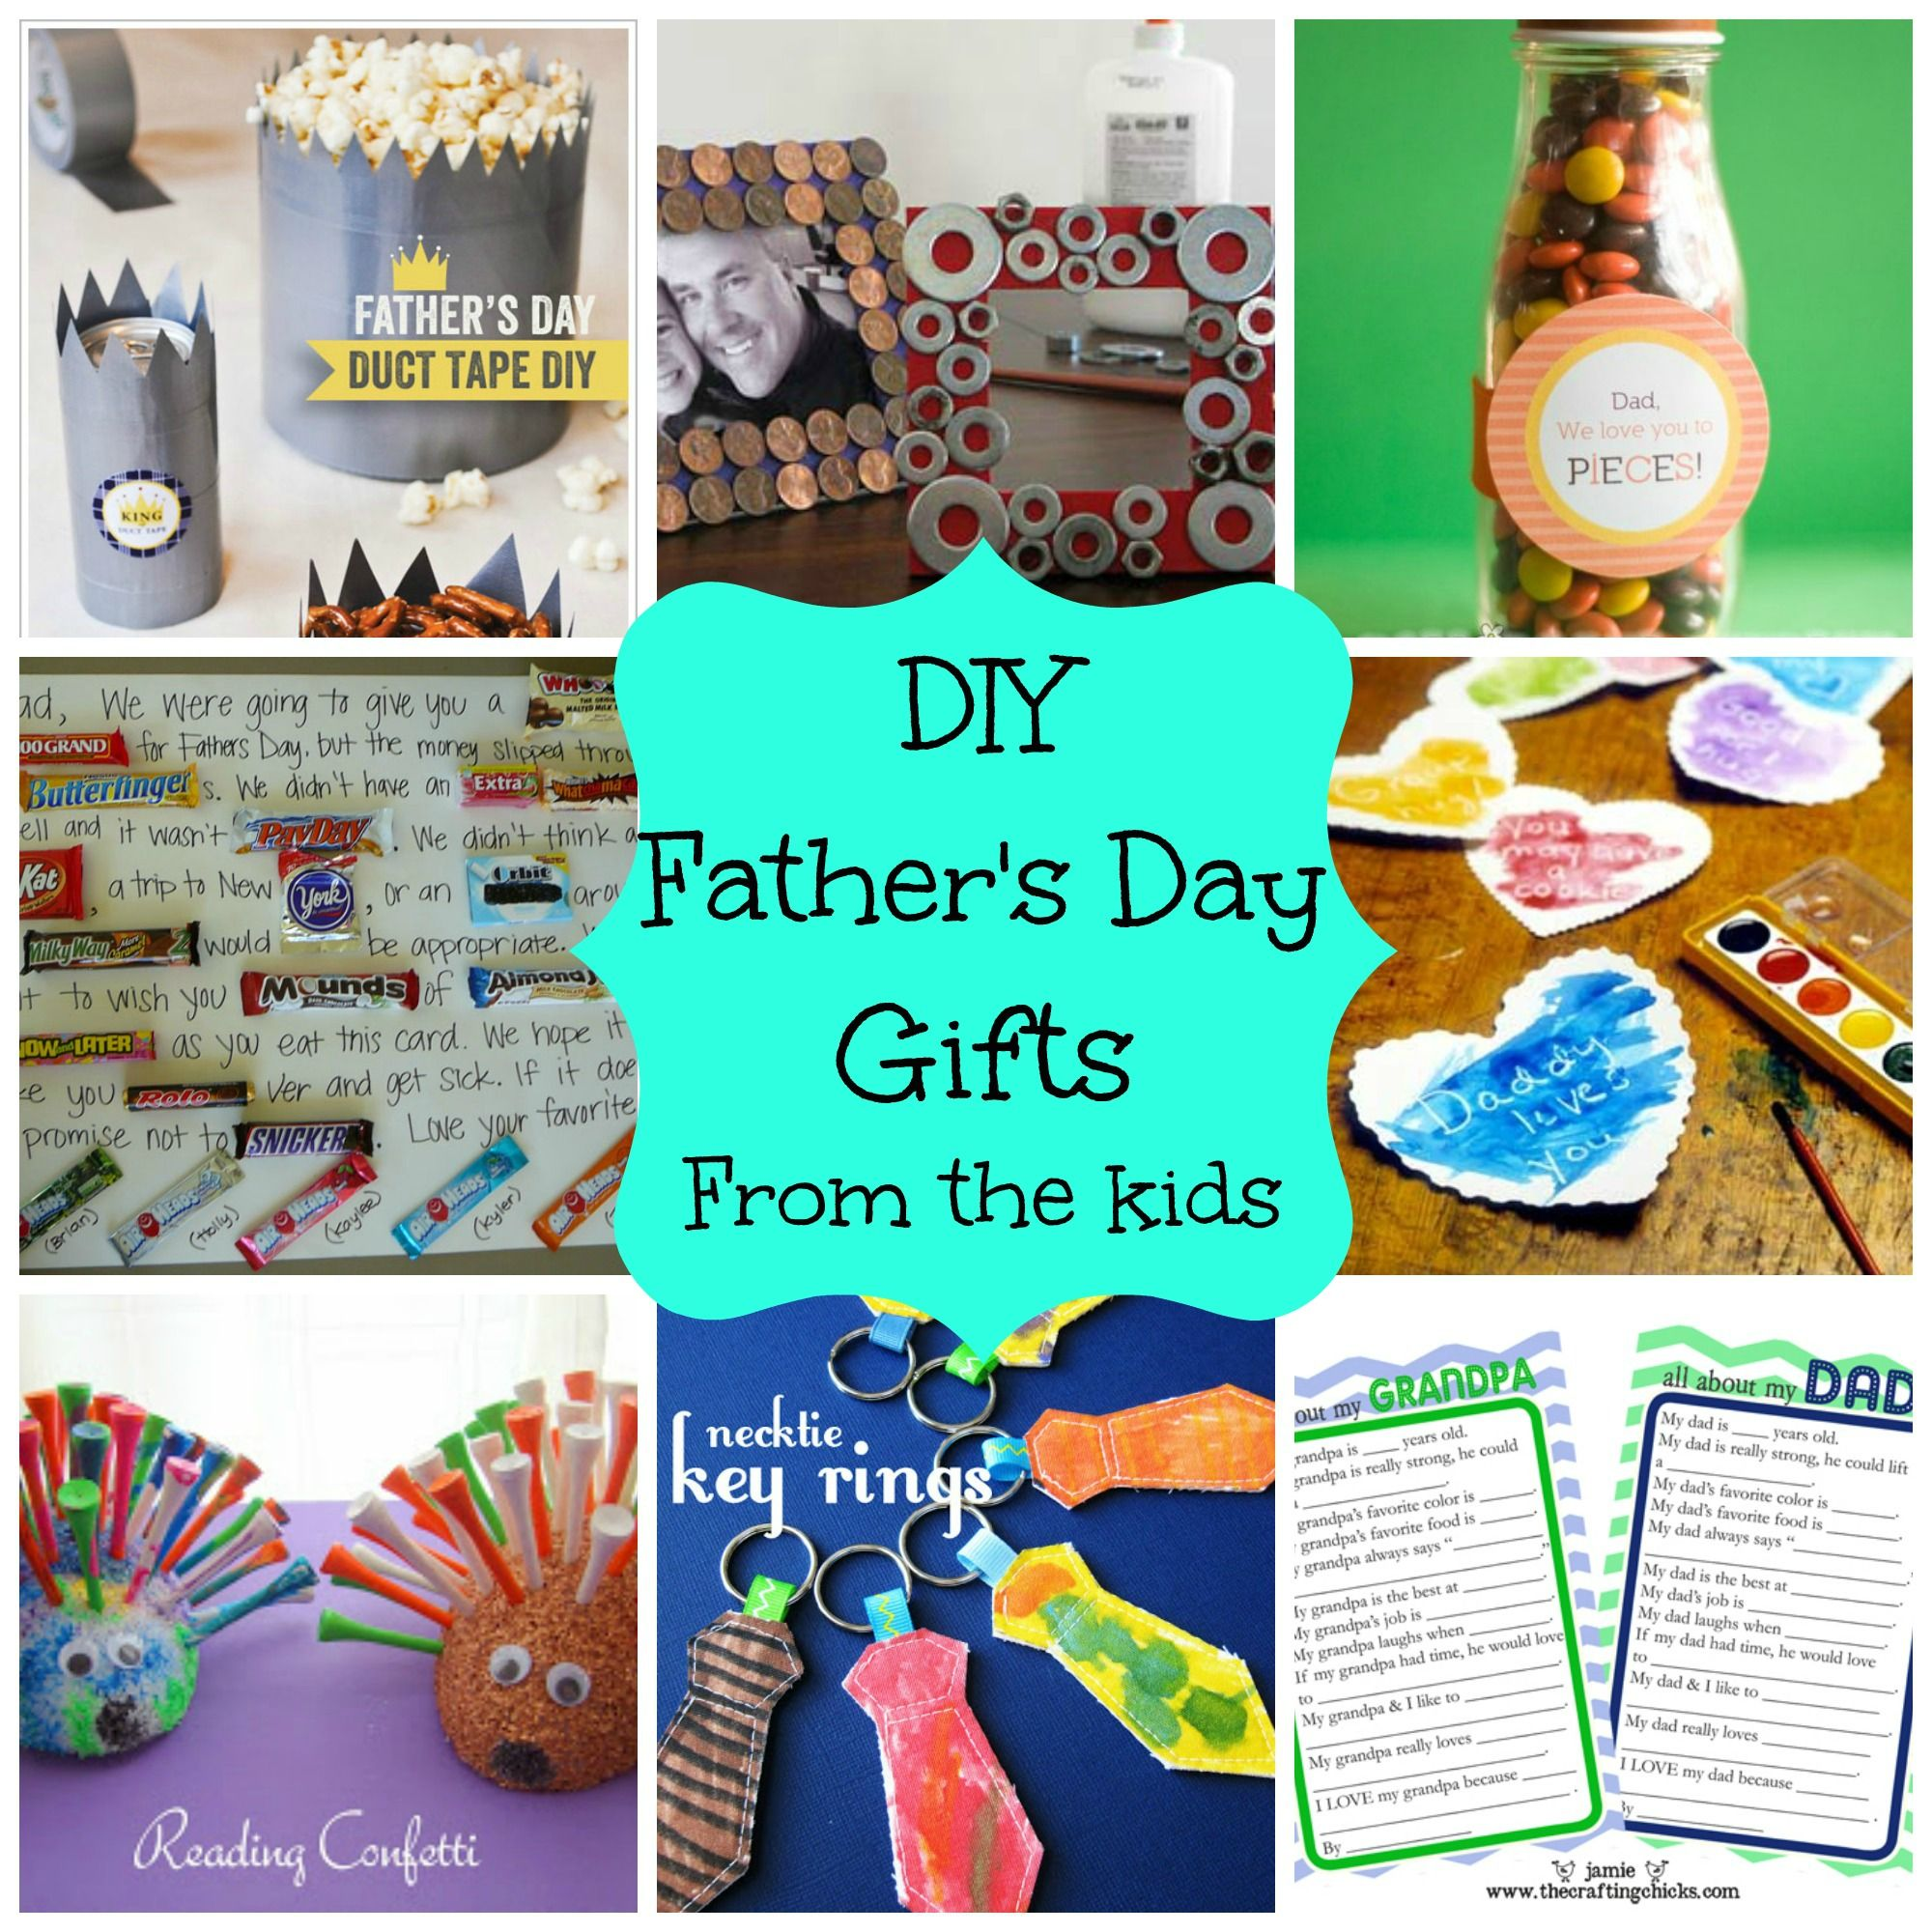 Diy Kids Presents For Dad  Diy Father's Day Gifts From. Church Website Template Free. Sample Resume For Mechanical Technician. Double Entry Journal Template. Sample 2 Week Notice Letter Template. Similarities And Differences Between Mesopotamia Template. Resume Cover Letter Sample Free Template. Business Contact List Template. Resume Sample For Administrative Assistants Template